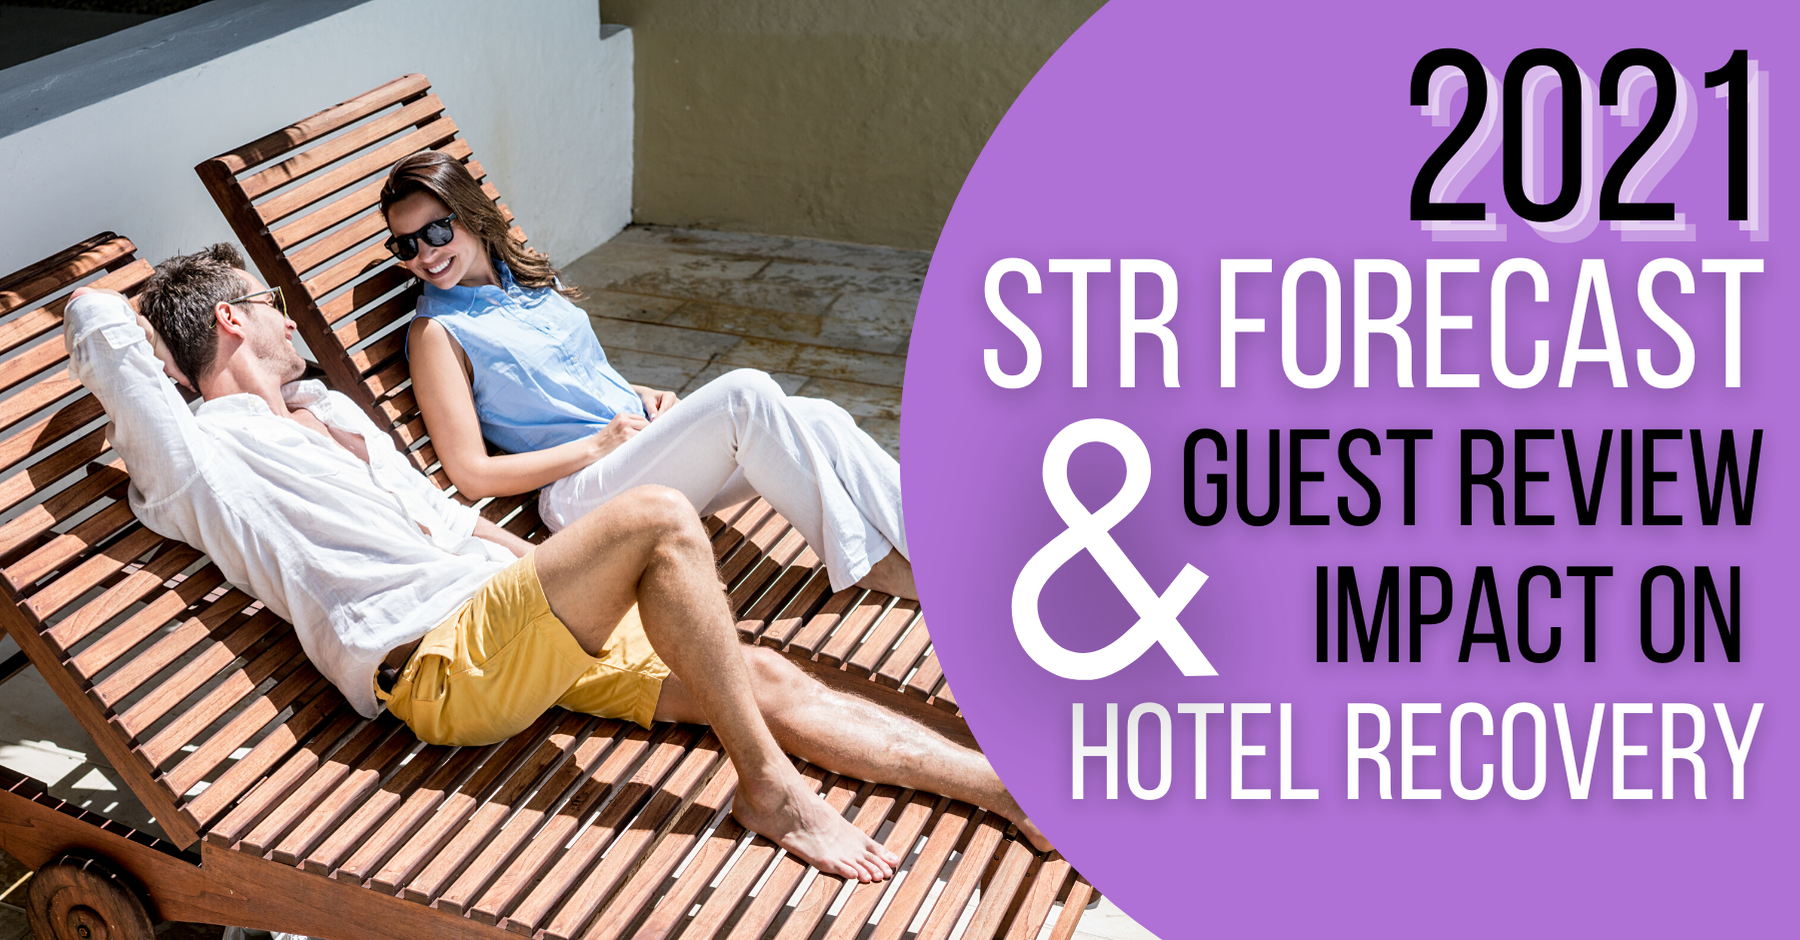 2021 STR FORECAST & GUEST REVIEW IMPACT ON HOTEL RECOVERY